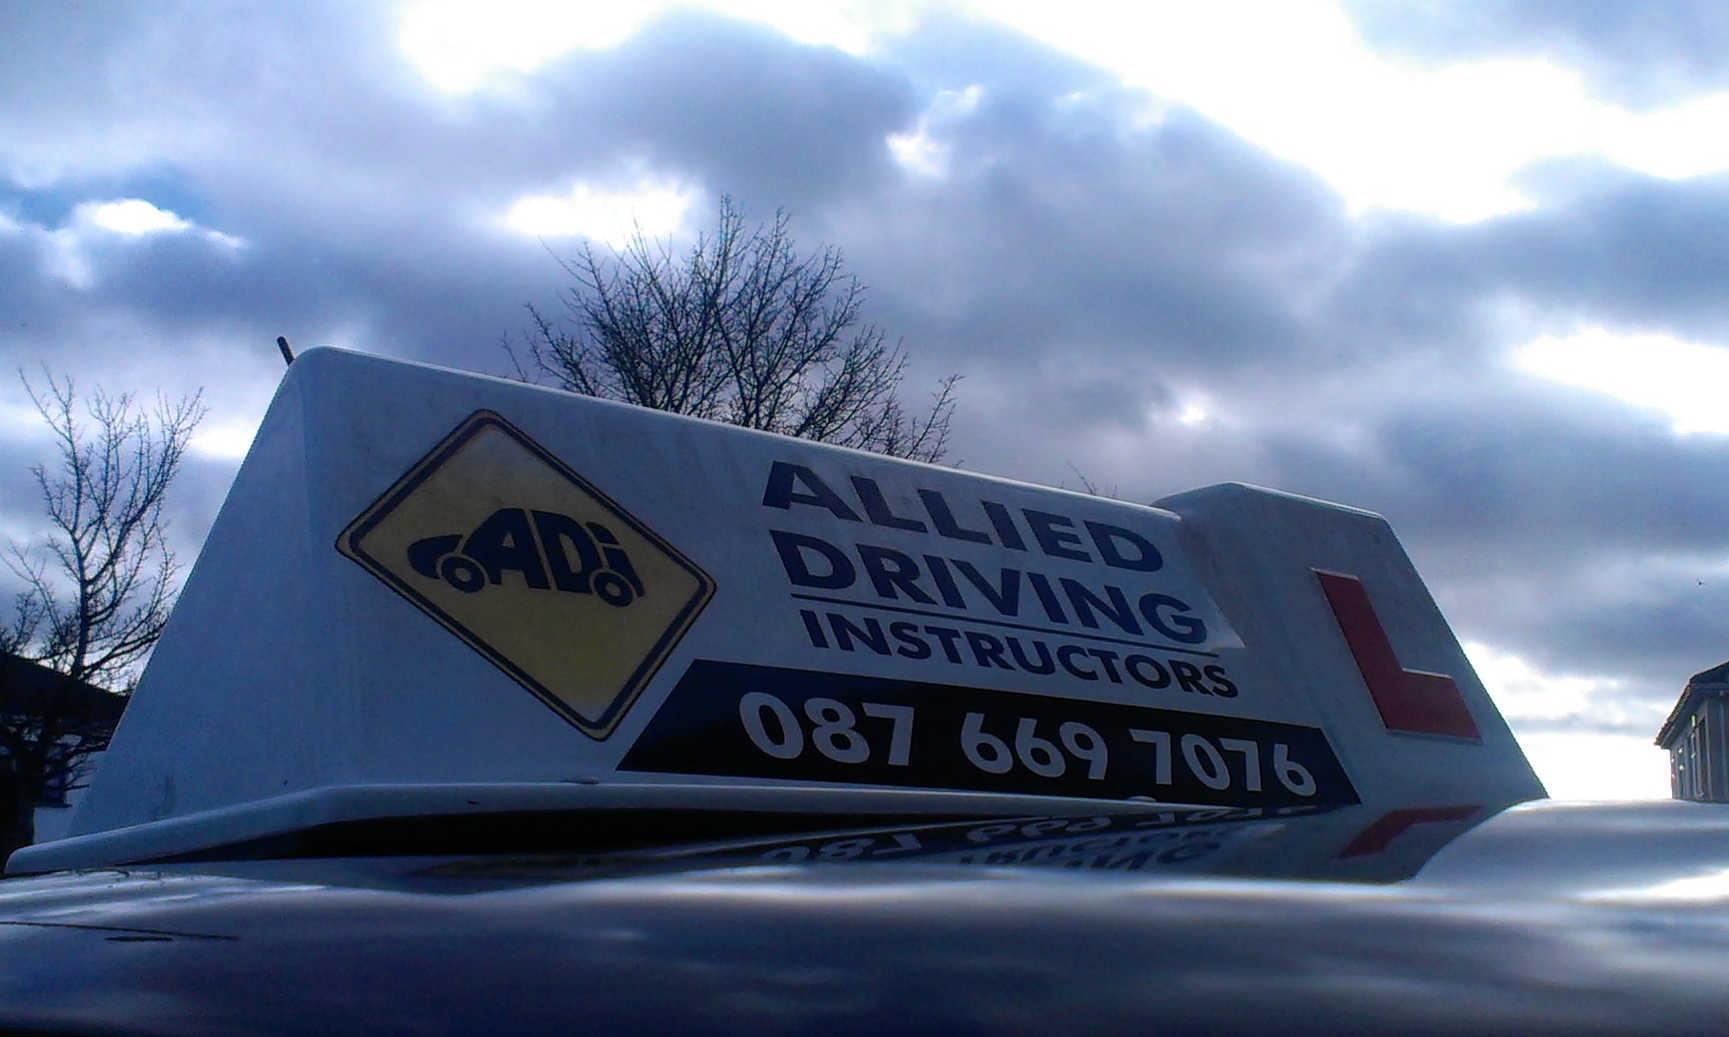 Will driving test centres close in bad weather